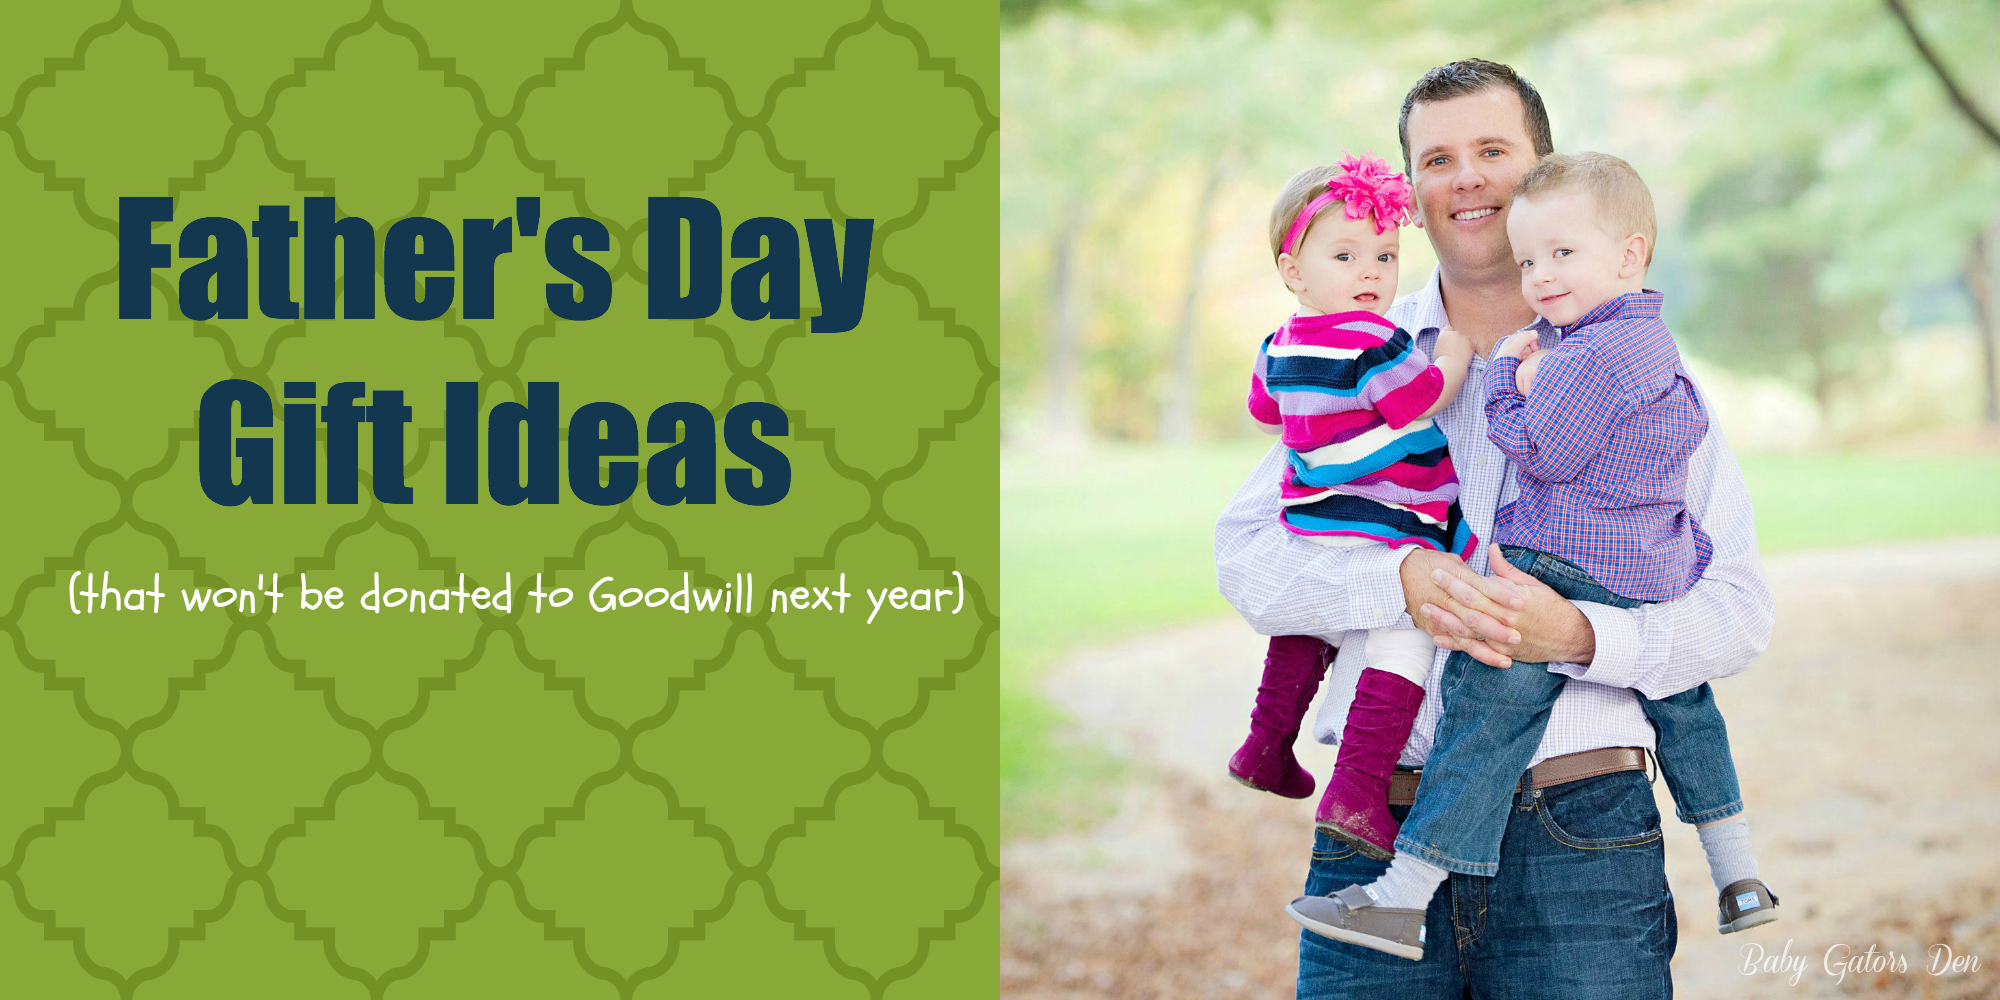 Father's Day Gift Ideas (that won't be donated to Goodwill next year)